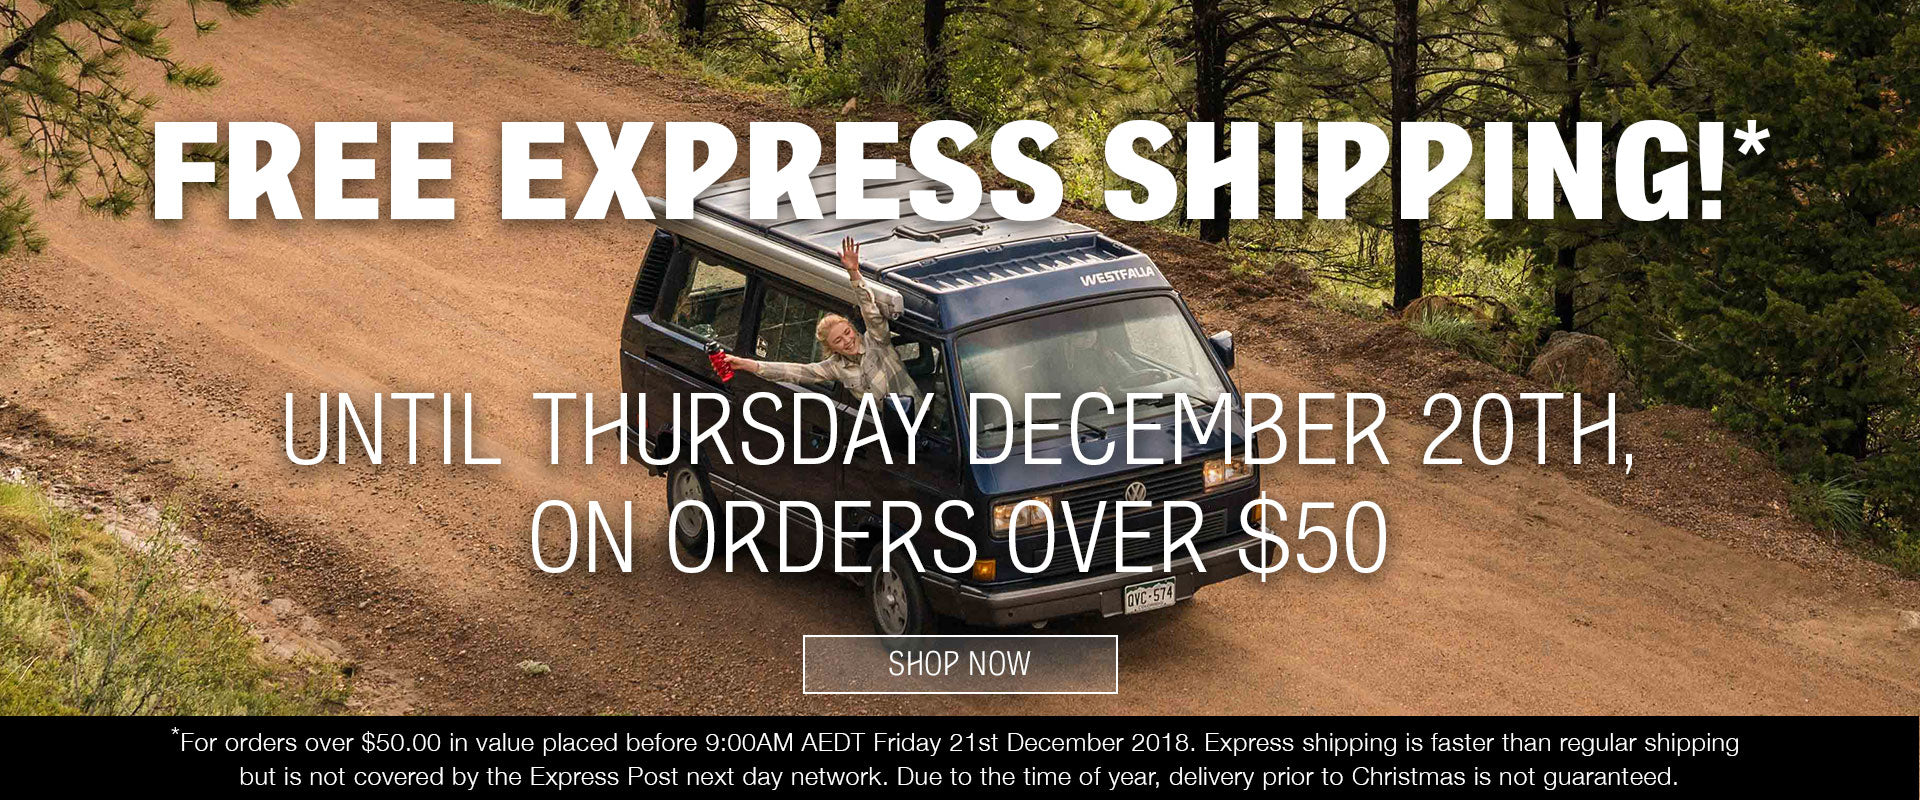 FREE EXPRESS SHIPPING ON ORDERS OVER $50. THIS WEEK ONLY!